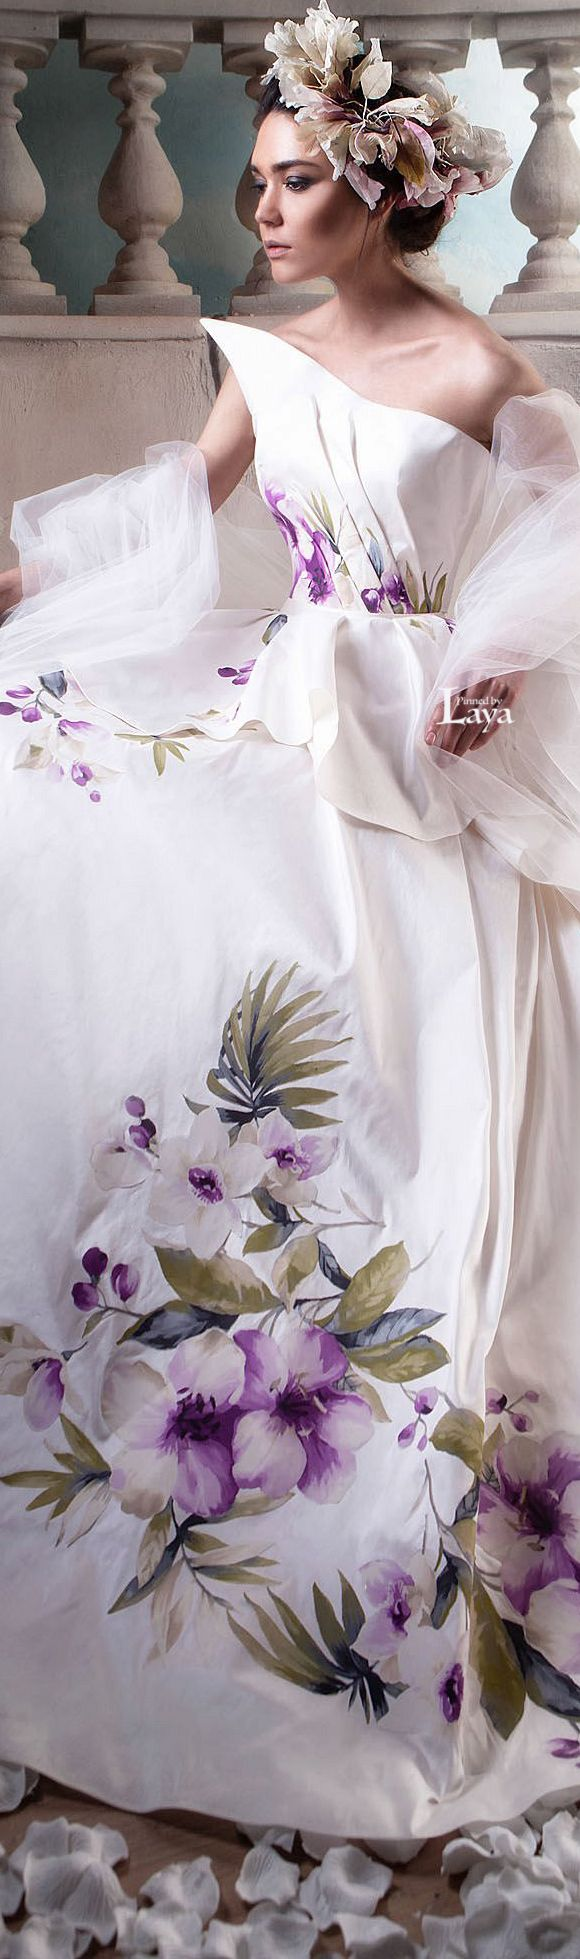 Lythwood loves how colour has added beauty to wedding dresses. ♥ #lythwood #weddings #bridalgown www.lythwoodweddings.co.za